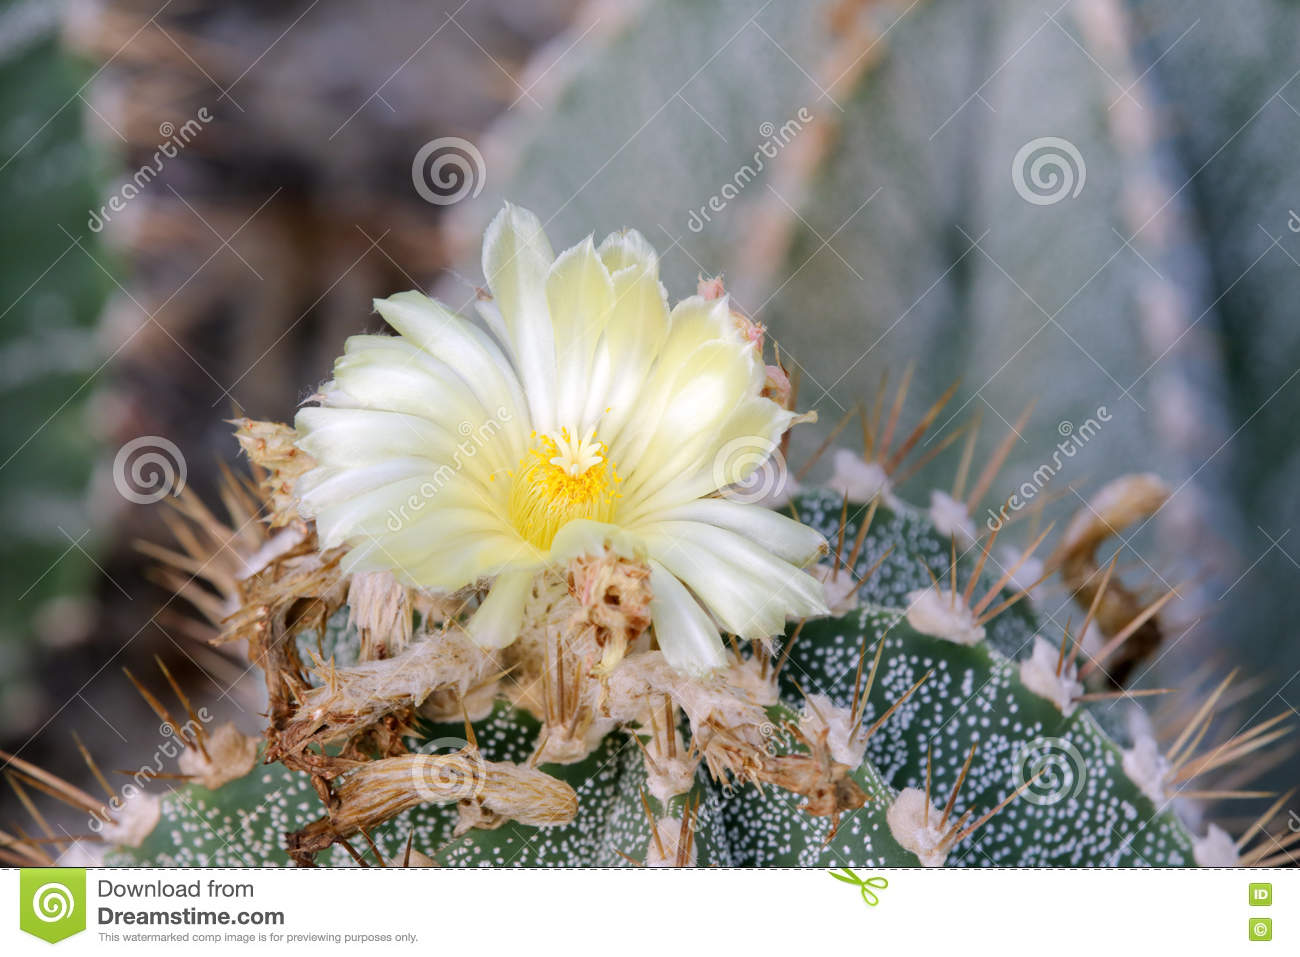 White Cactus Flower Stock Photo Image Of Agriculture 73323406